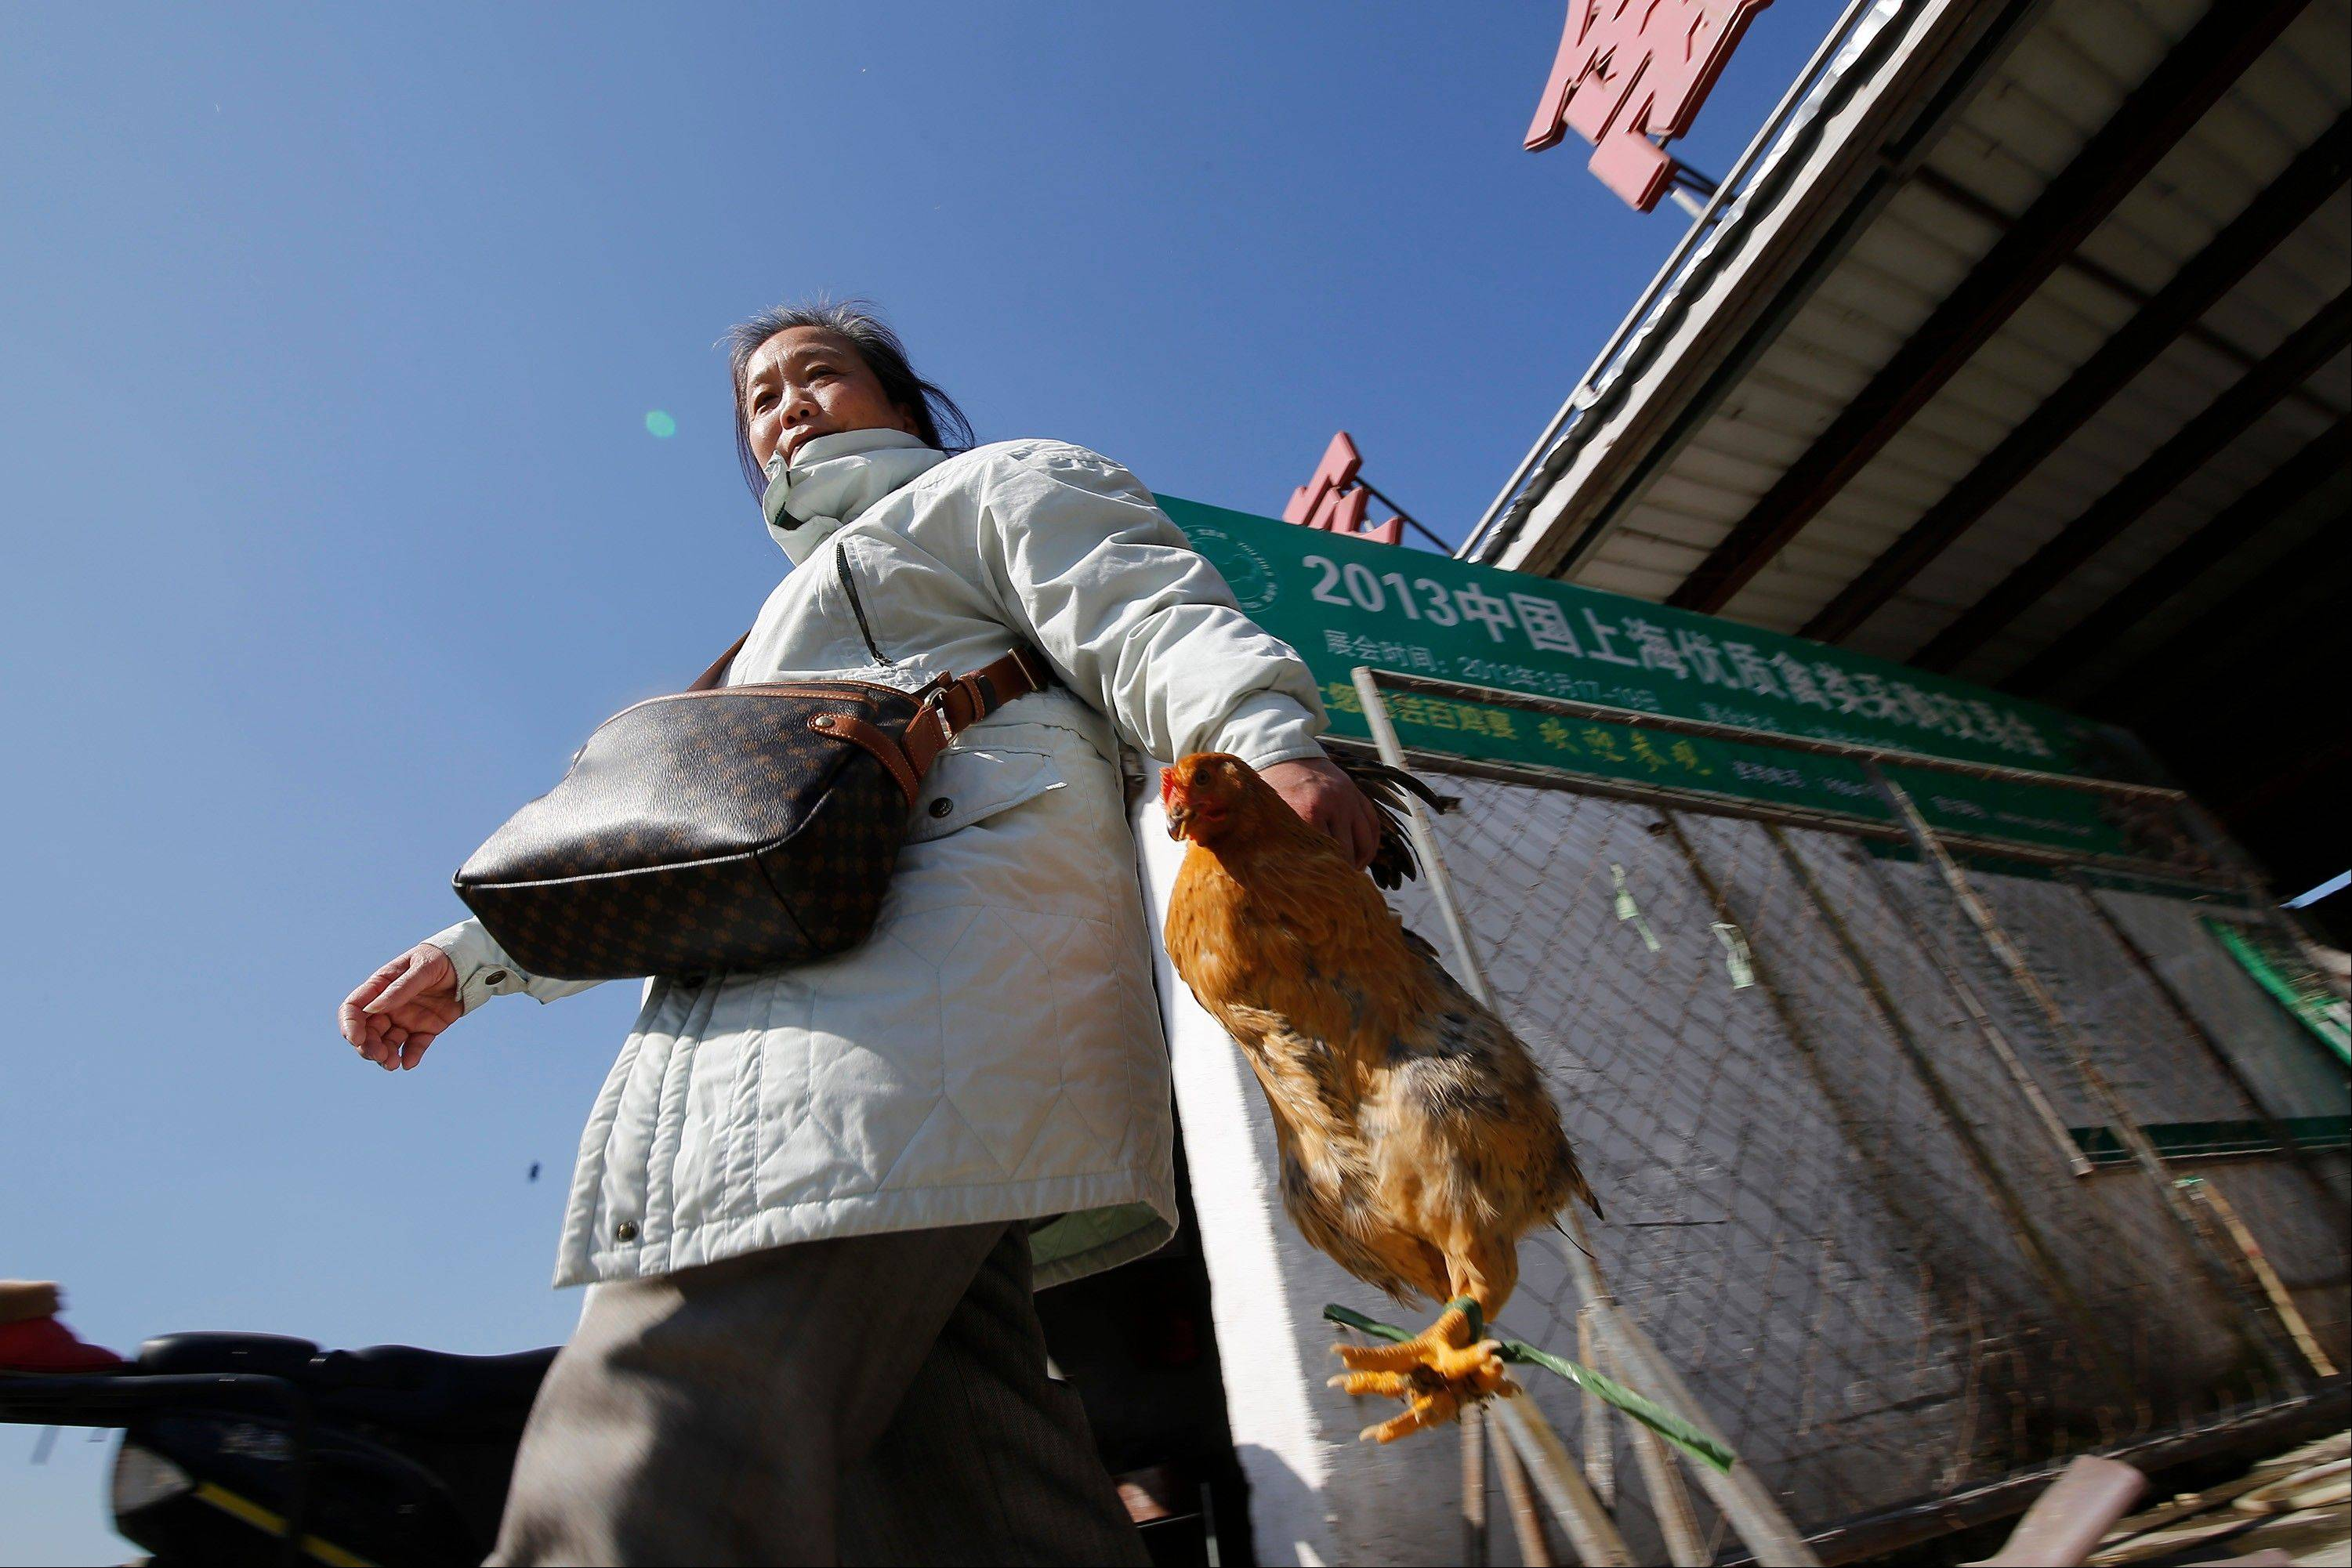 A spate of bird flu cases since the beginning of the year in China has experts watching closely as millions of people and poultry are on the move ahead of the Lunar New Year holiday, the world�s largest annual human migration.